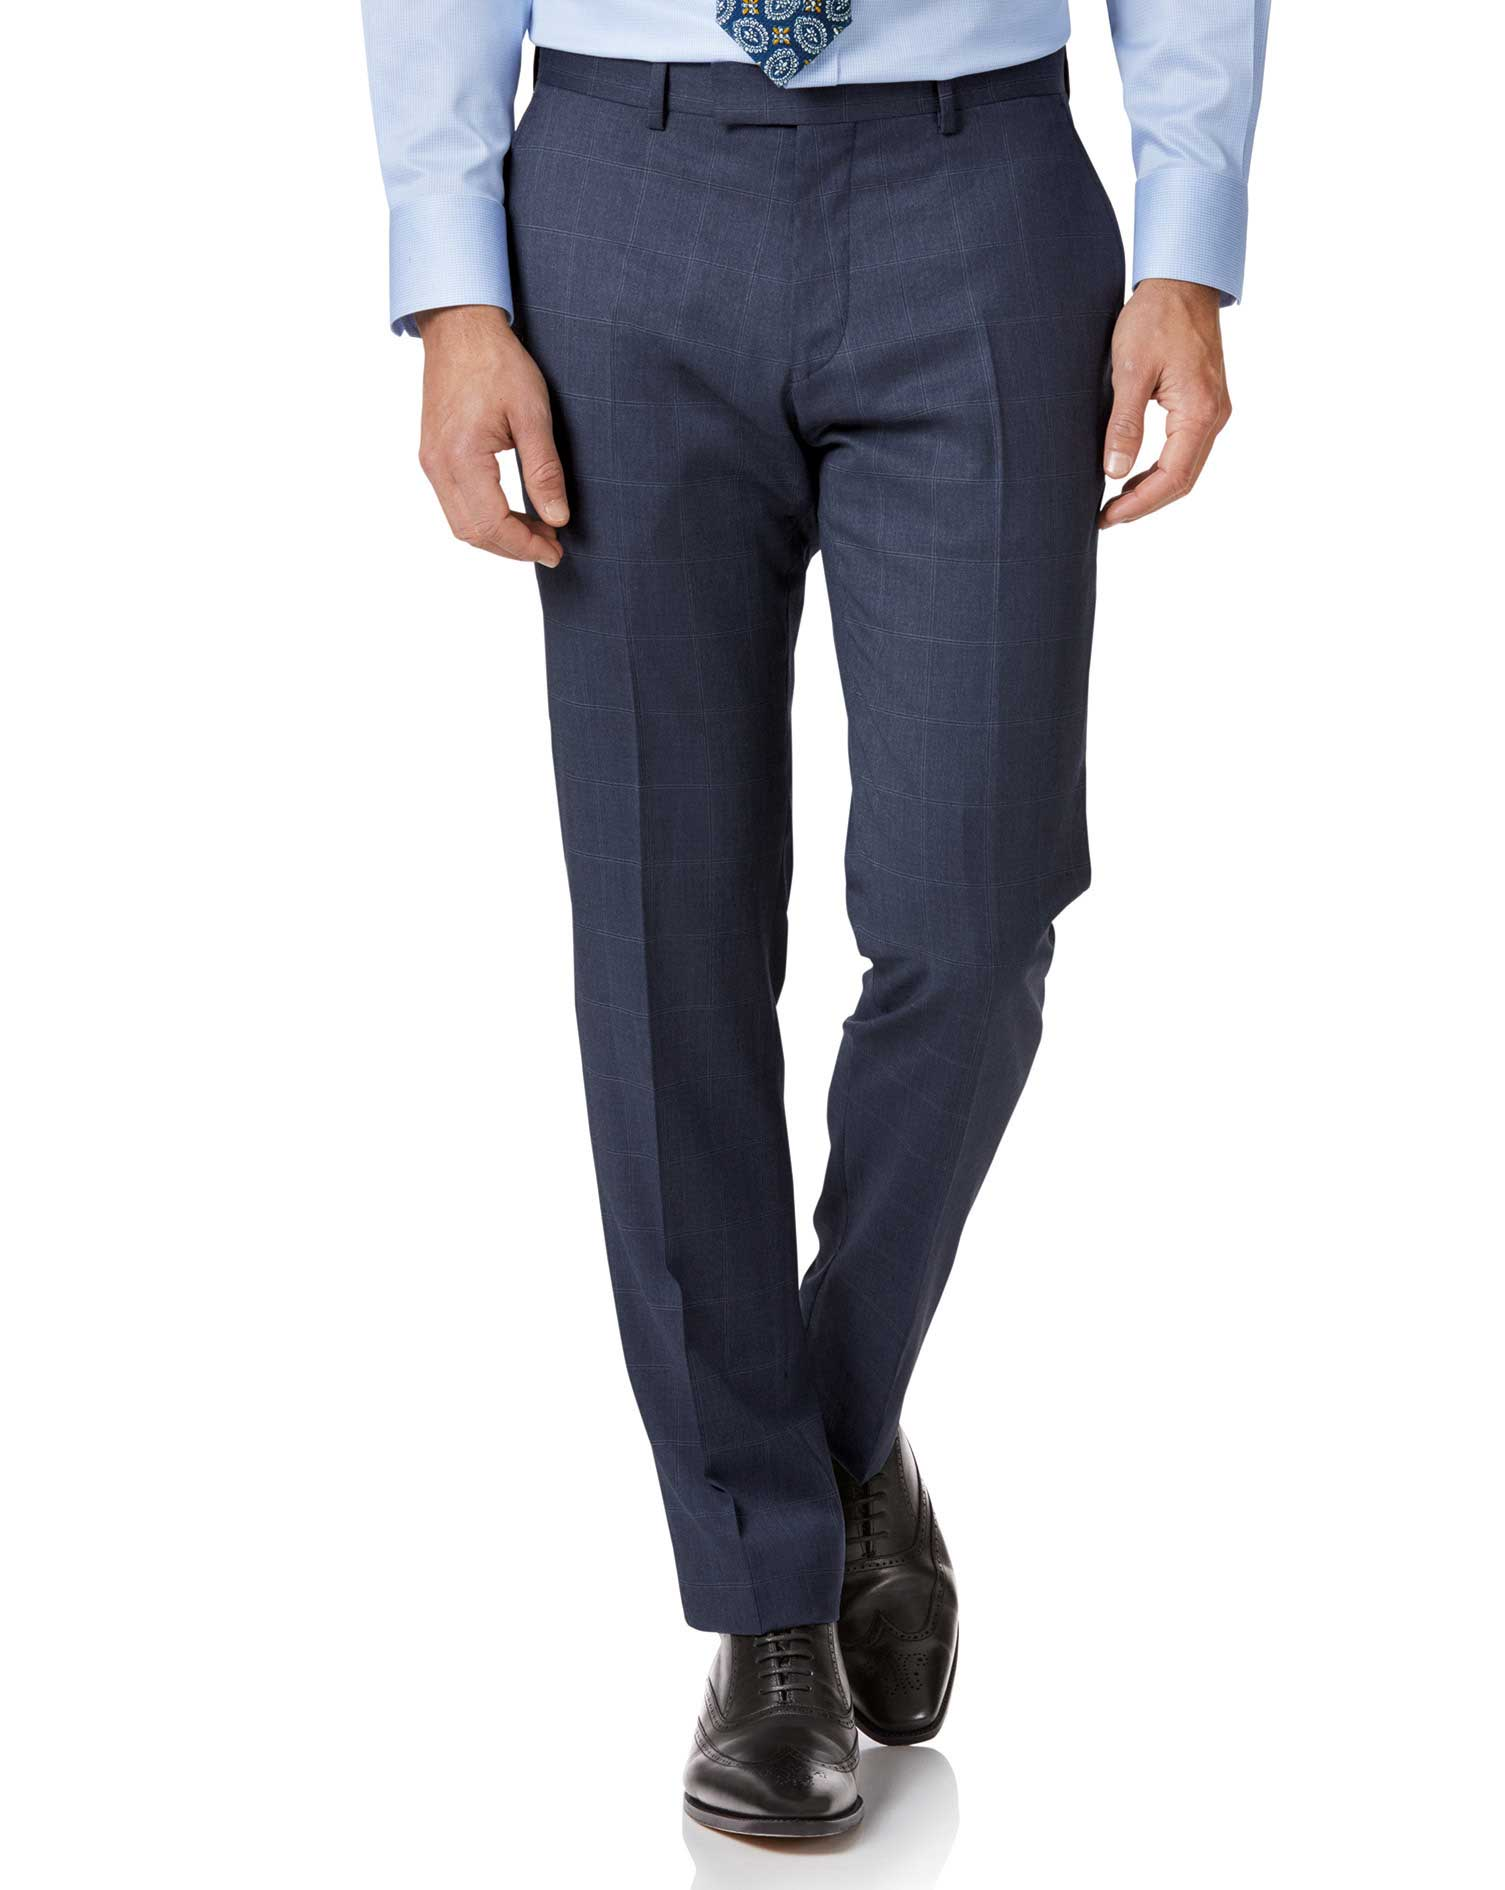 Image of Charles Tyrwhitt Airforce Blue Slim Fit Italian Suit Trousers Size W76 L97 by Charles Tyrwhitt